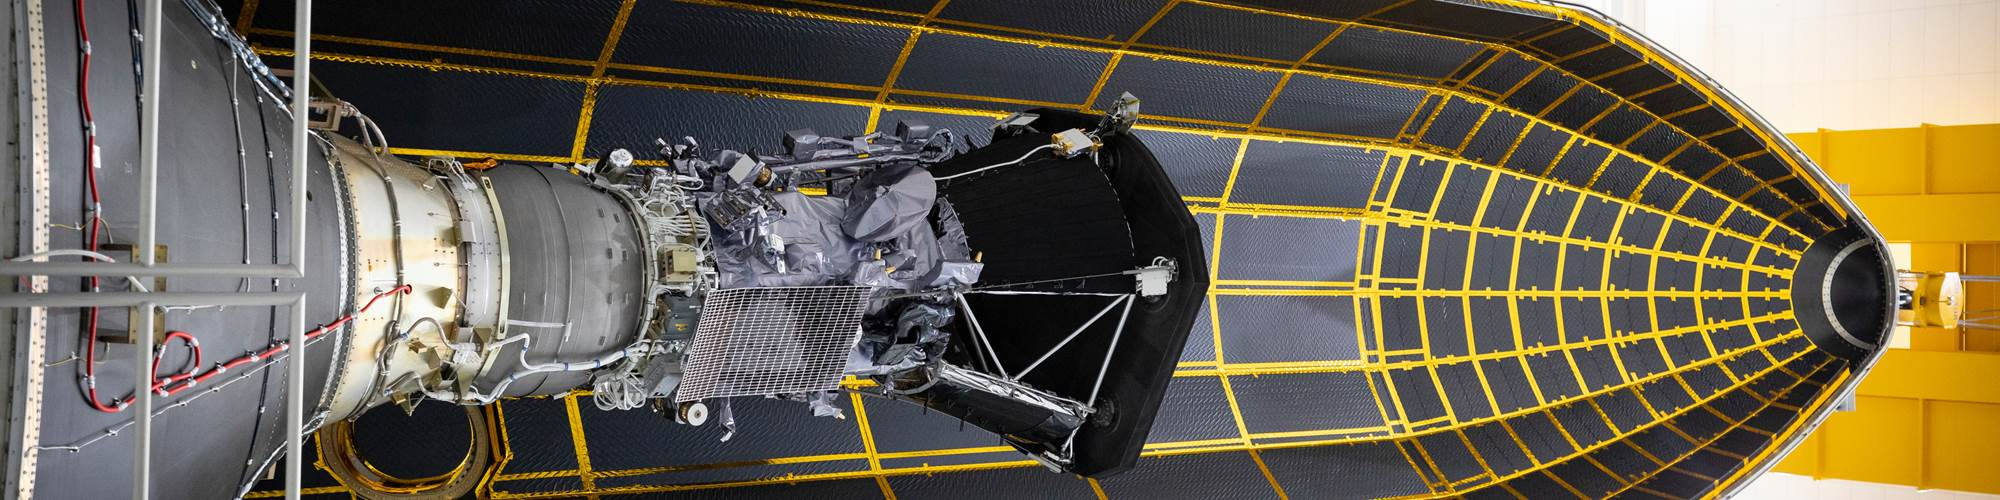 carbon fiber composite payload fairings for space launch vehicle